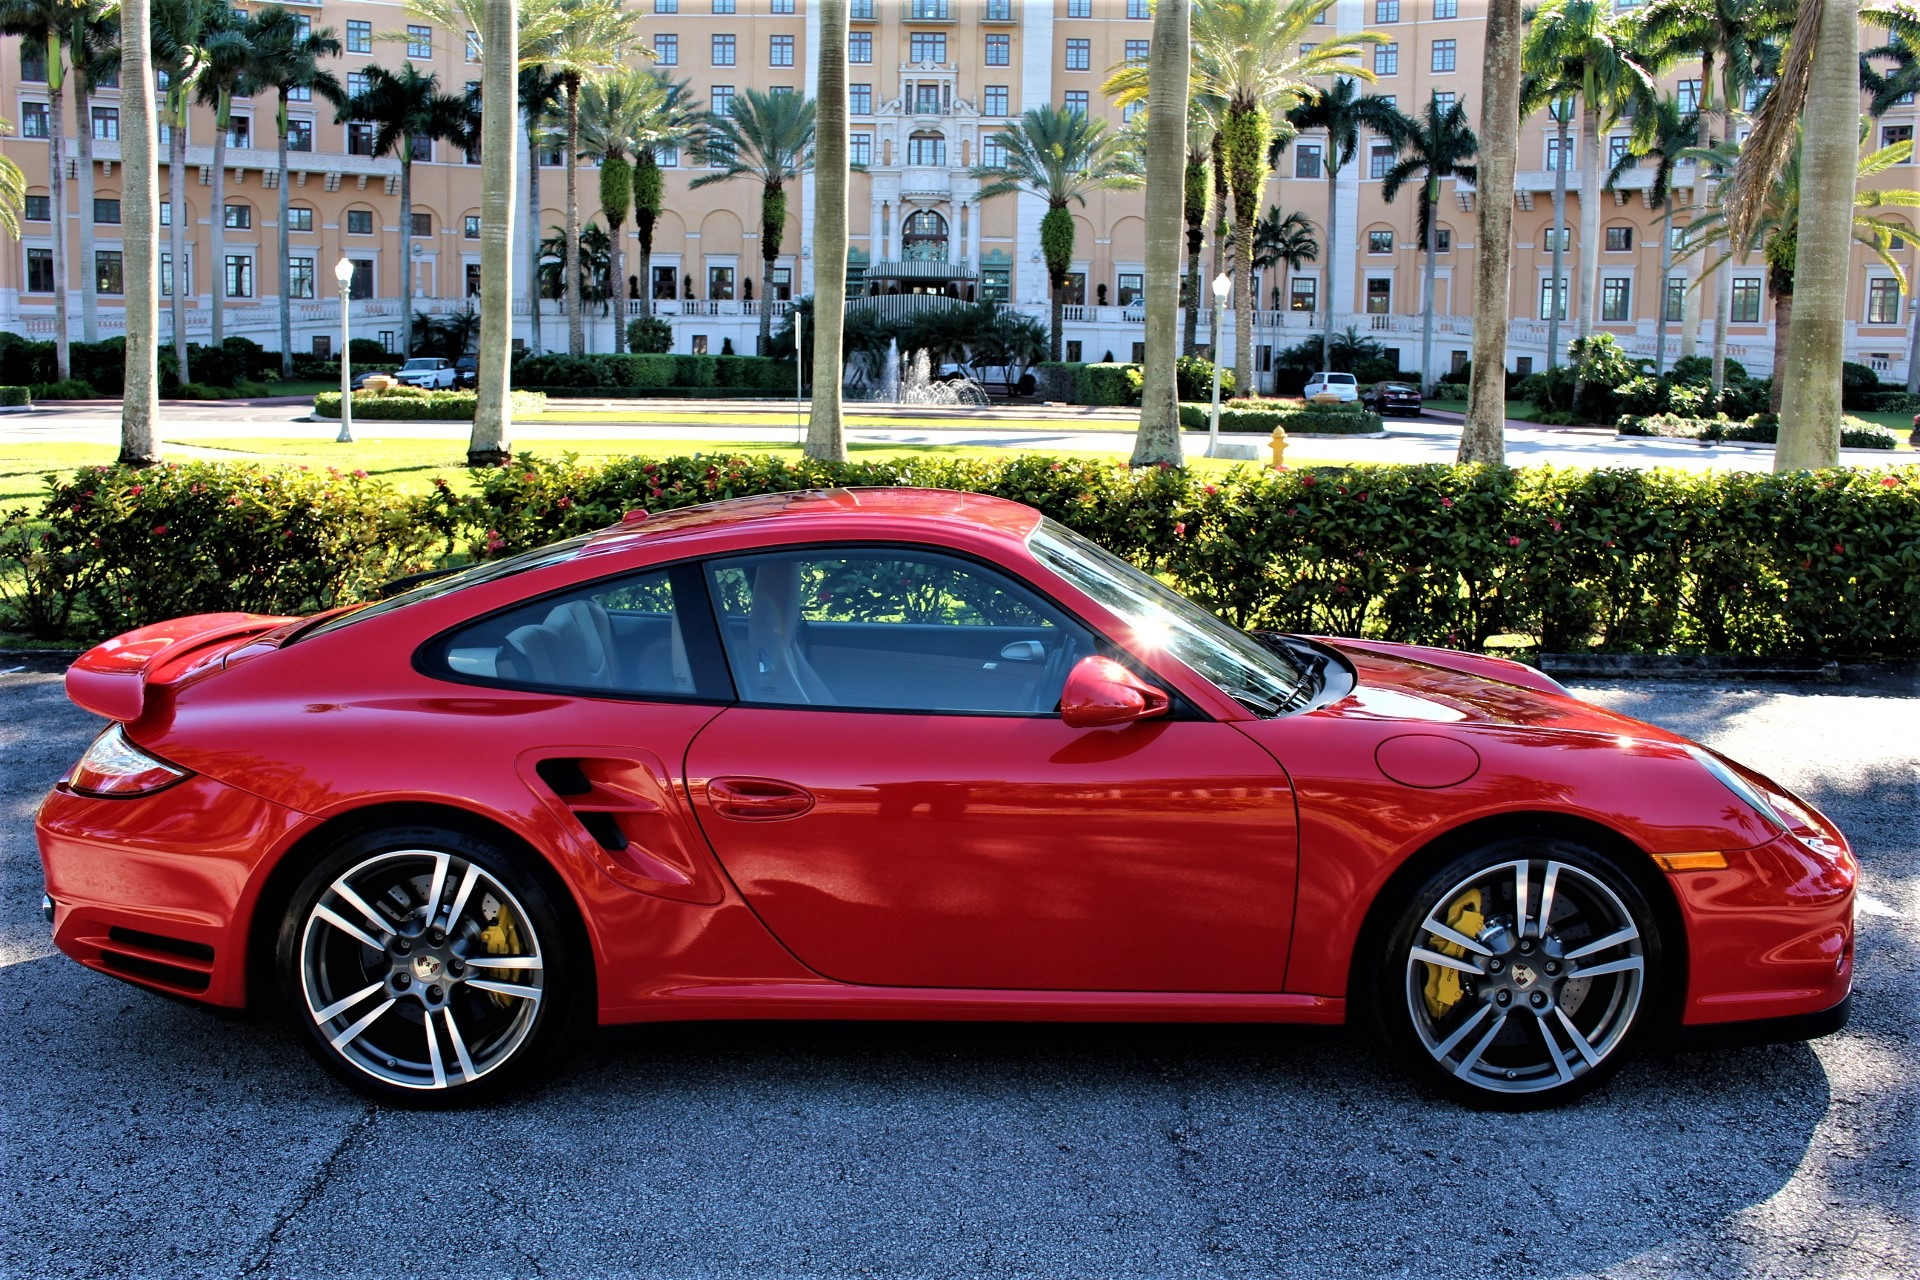 Used 2012 Porsche 911 Turbo for sale $94,850 at The Gables Sports Cars in Miami FL 33146 1